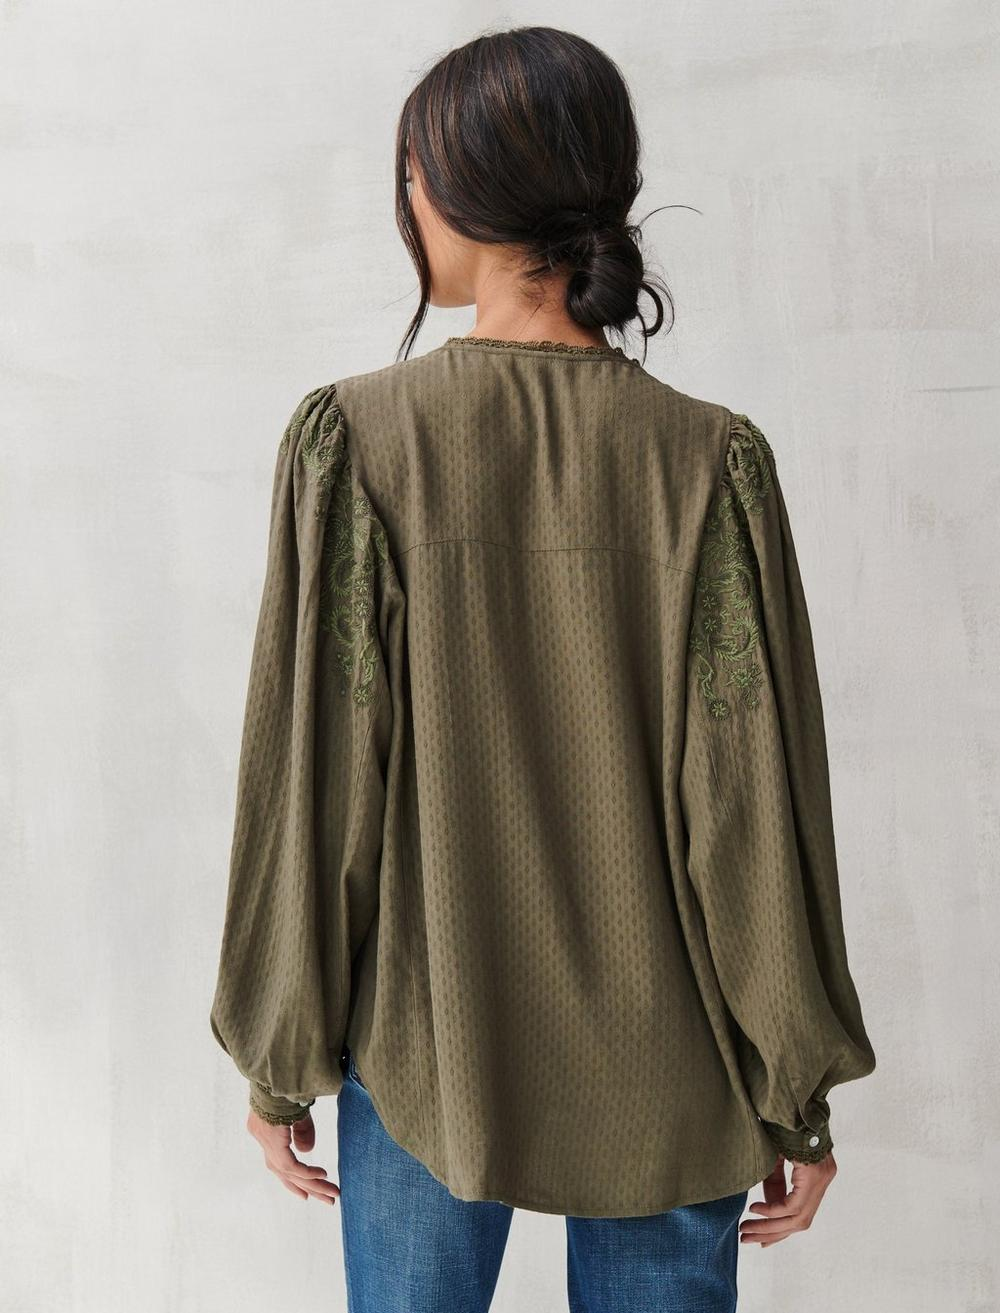 TEXTURED EMBROIDERED PEASANT TOP, image 5